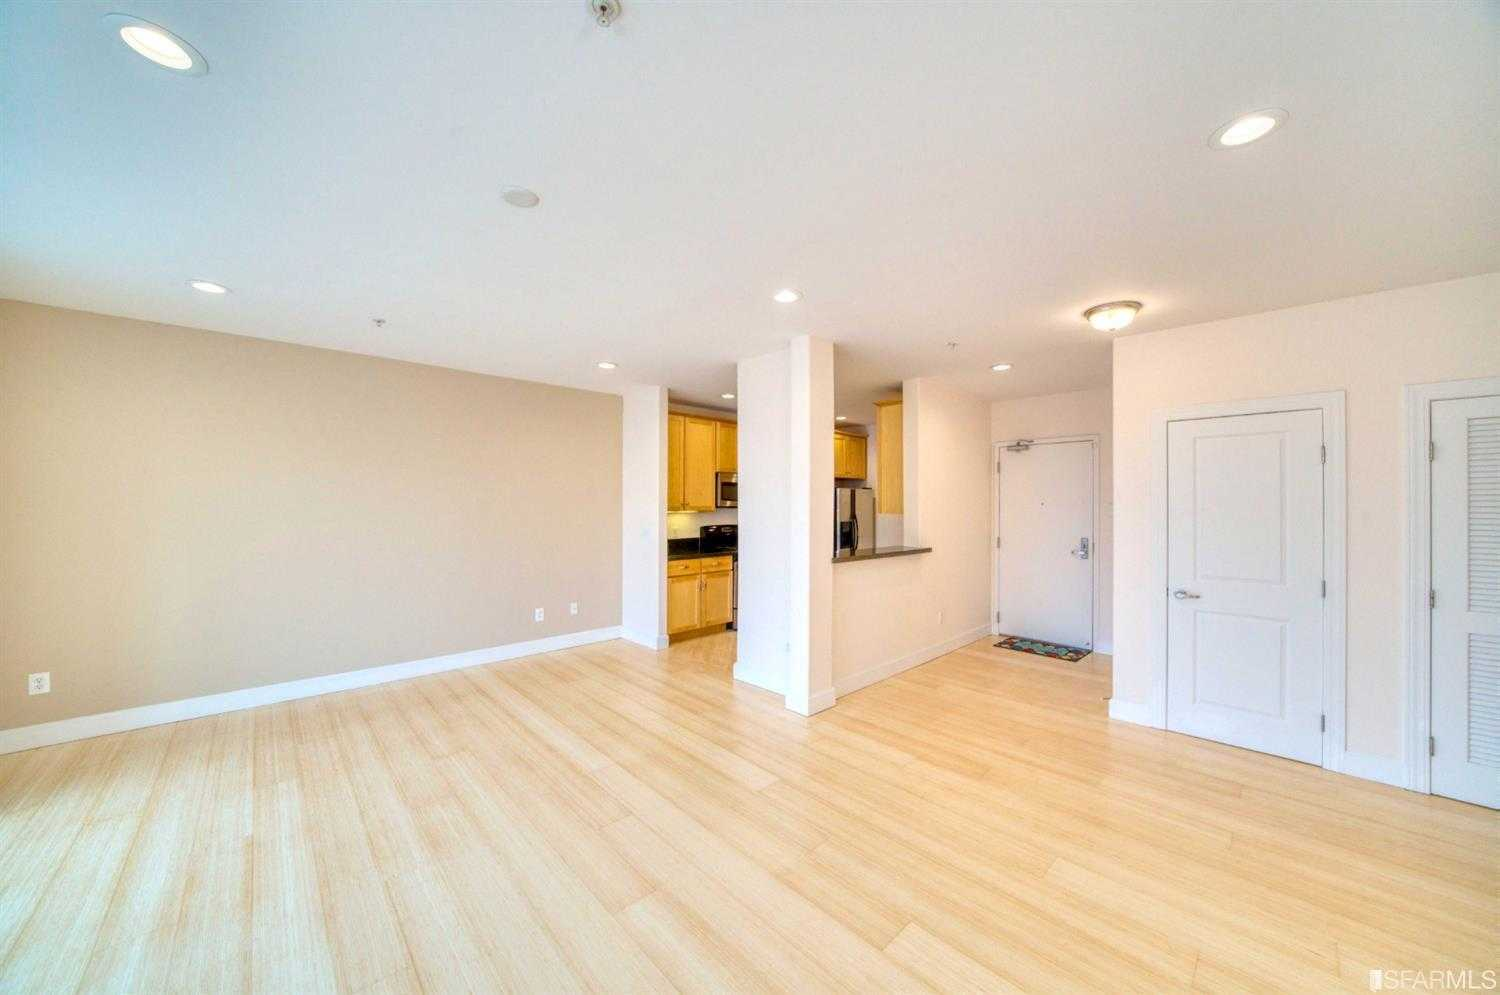 $699,000 - 2Br/0Ba -  for Sale in Daly City